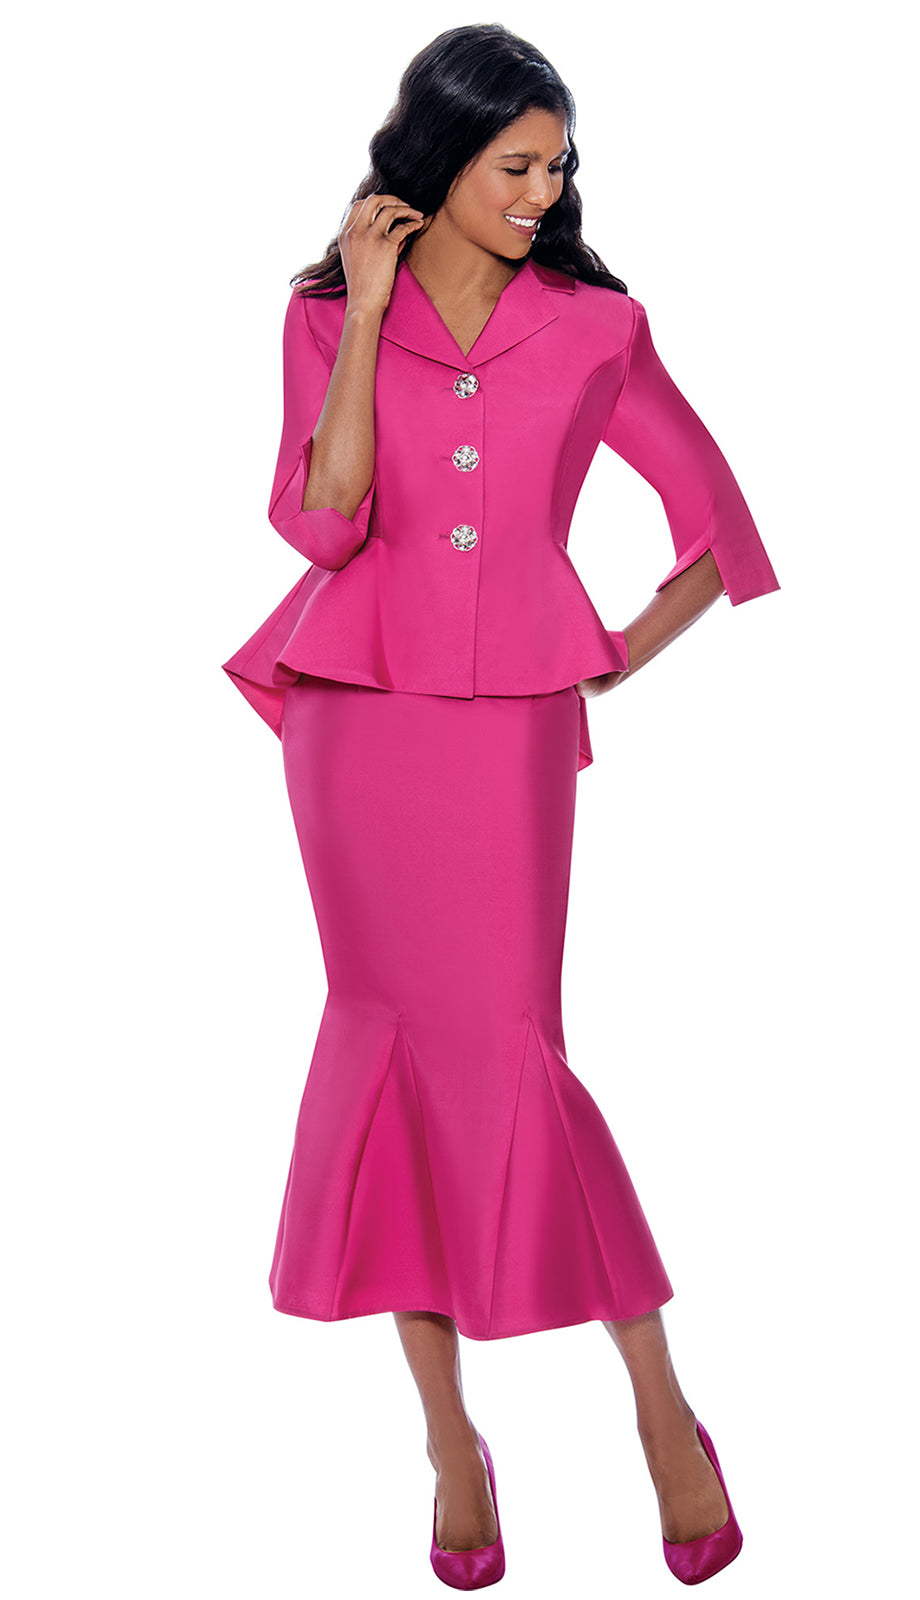 GMI Suit 8342-Fuchsia - Church Suits For Less